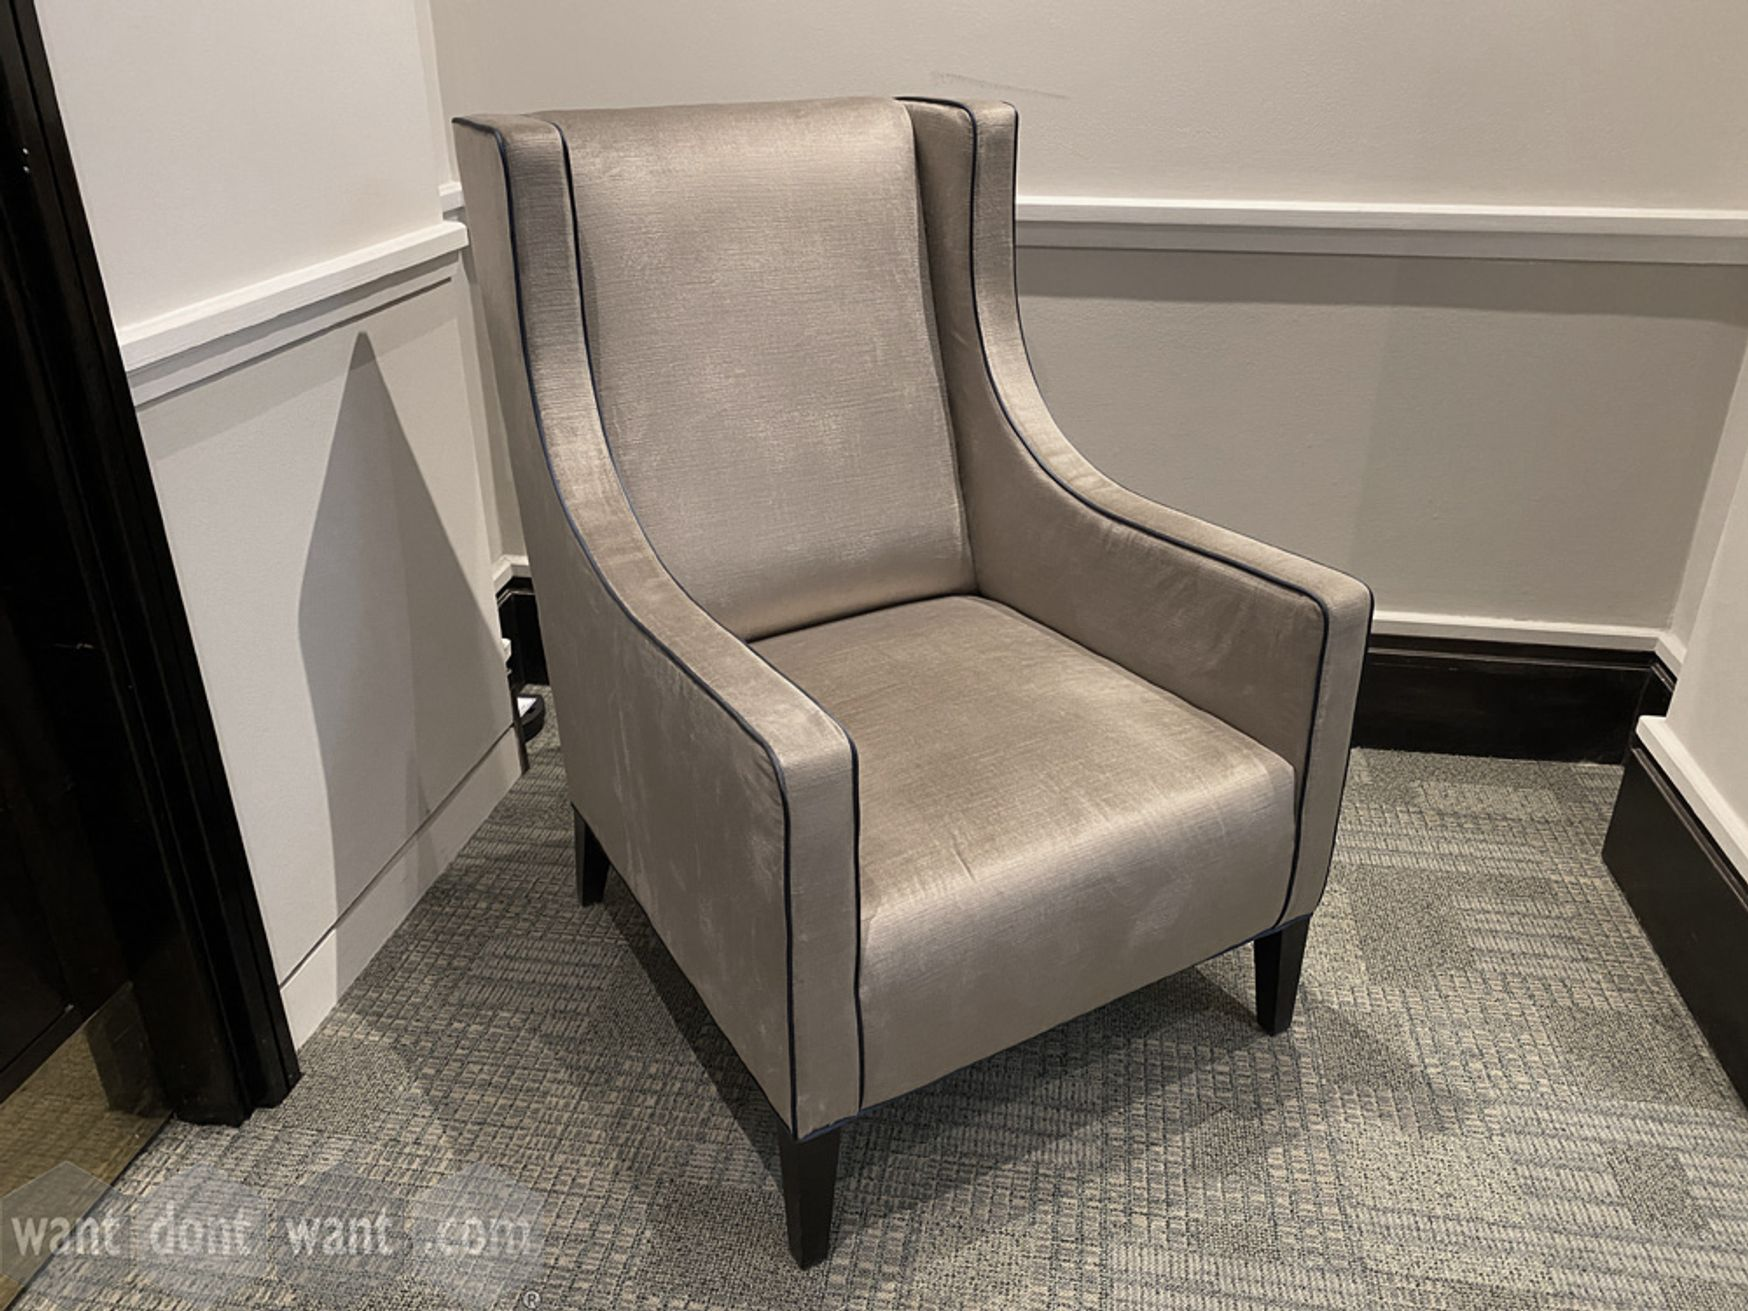 Used high quality armchair with black piping on velvet style fabric